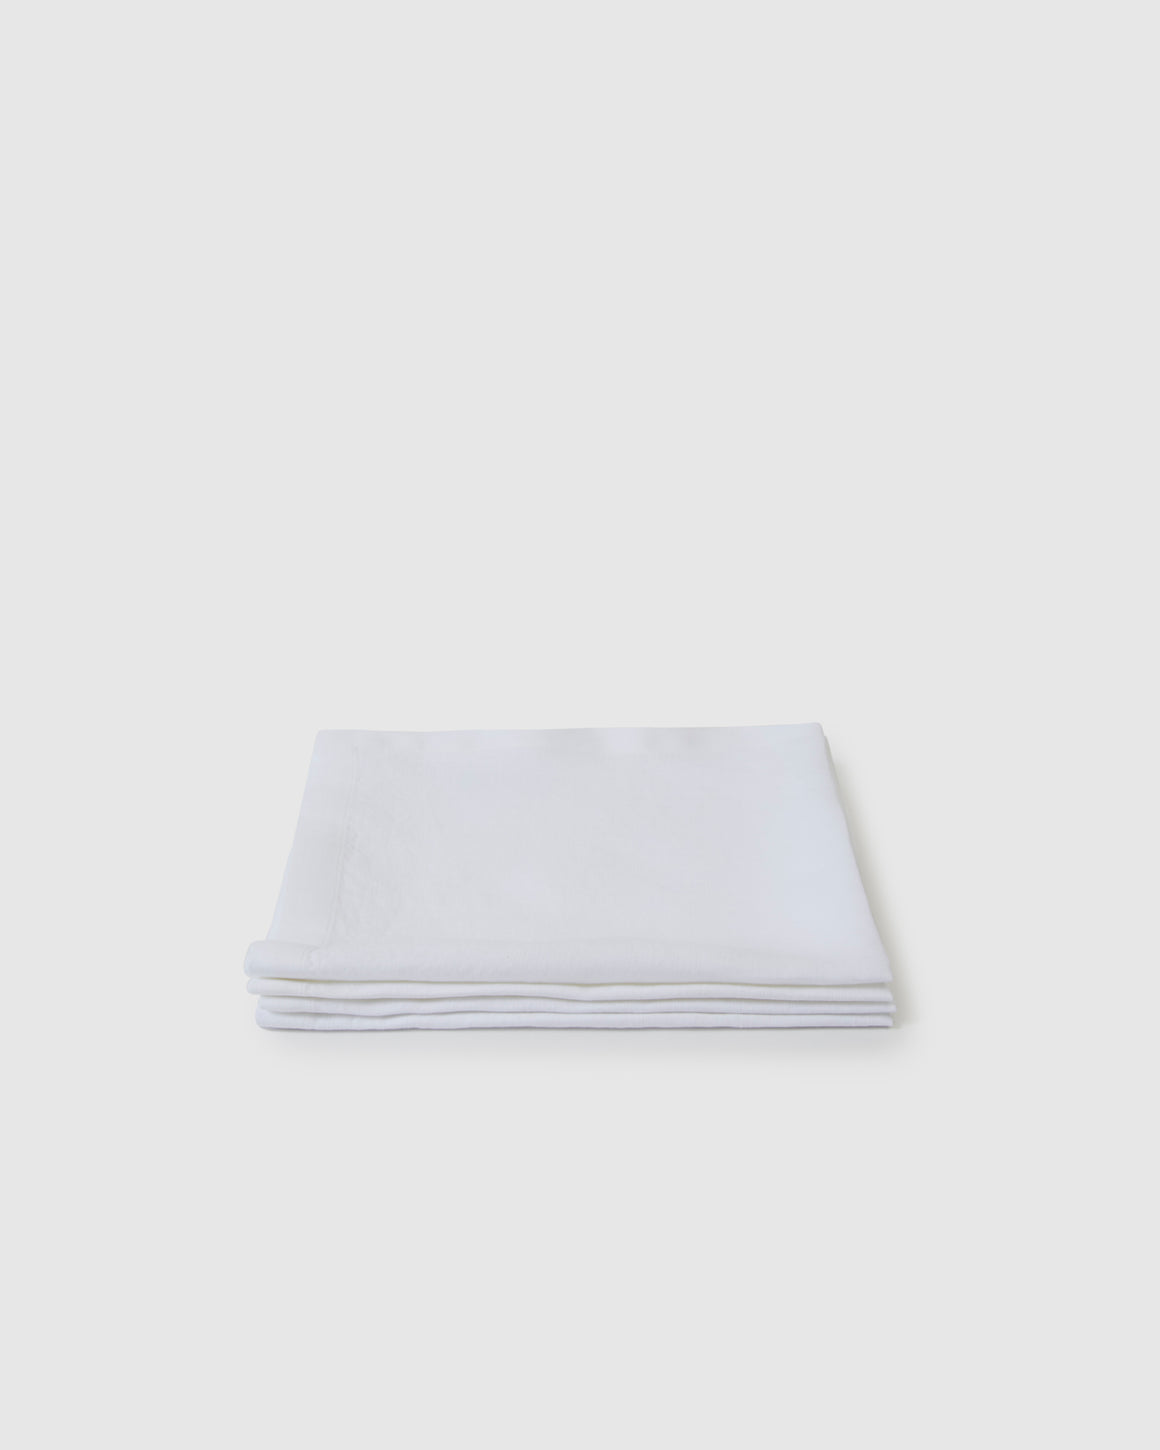 Berkeley Linen Table Napkins (Set of 4) - Milk